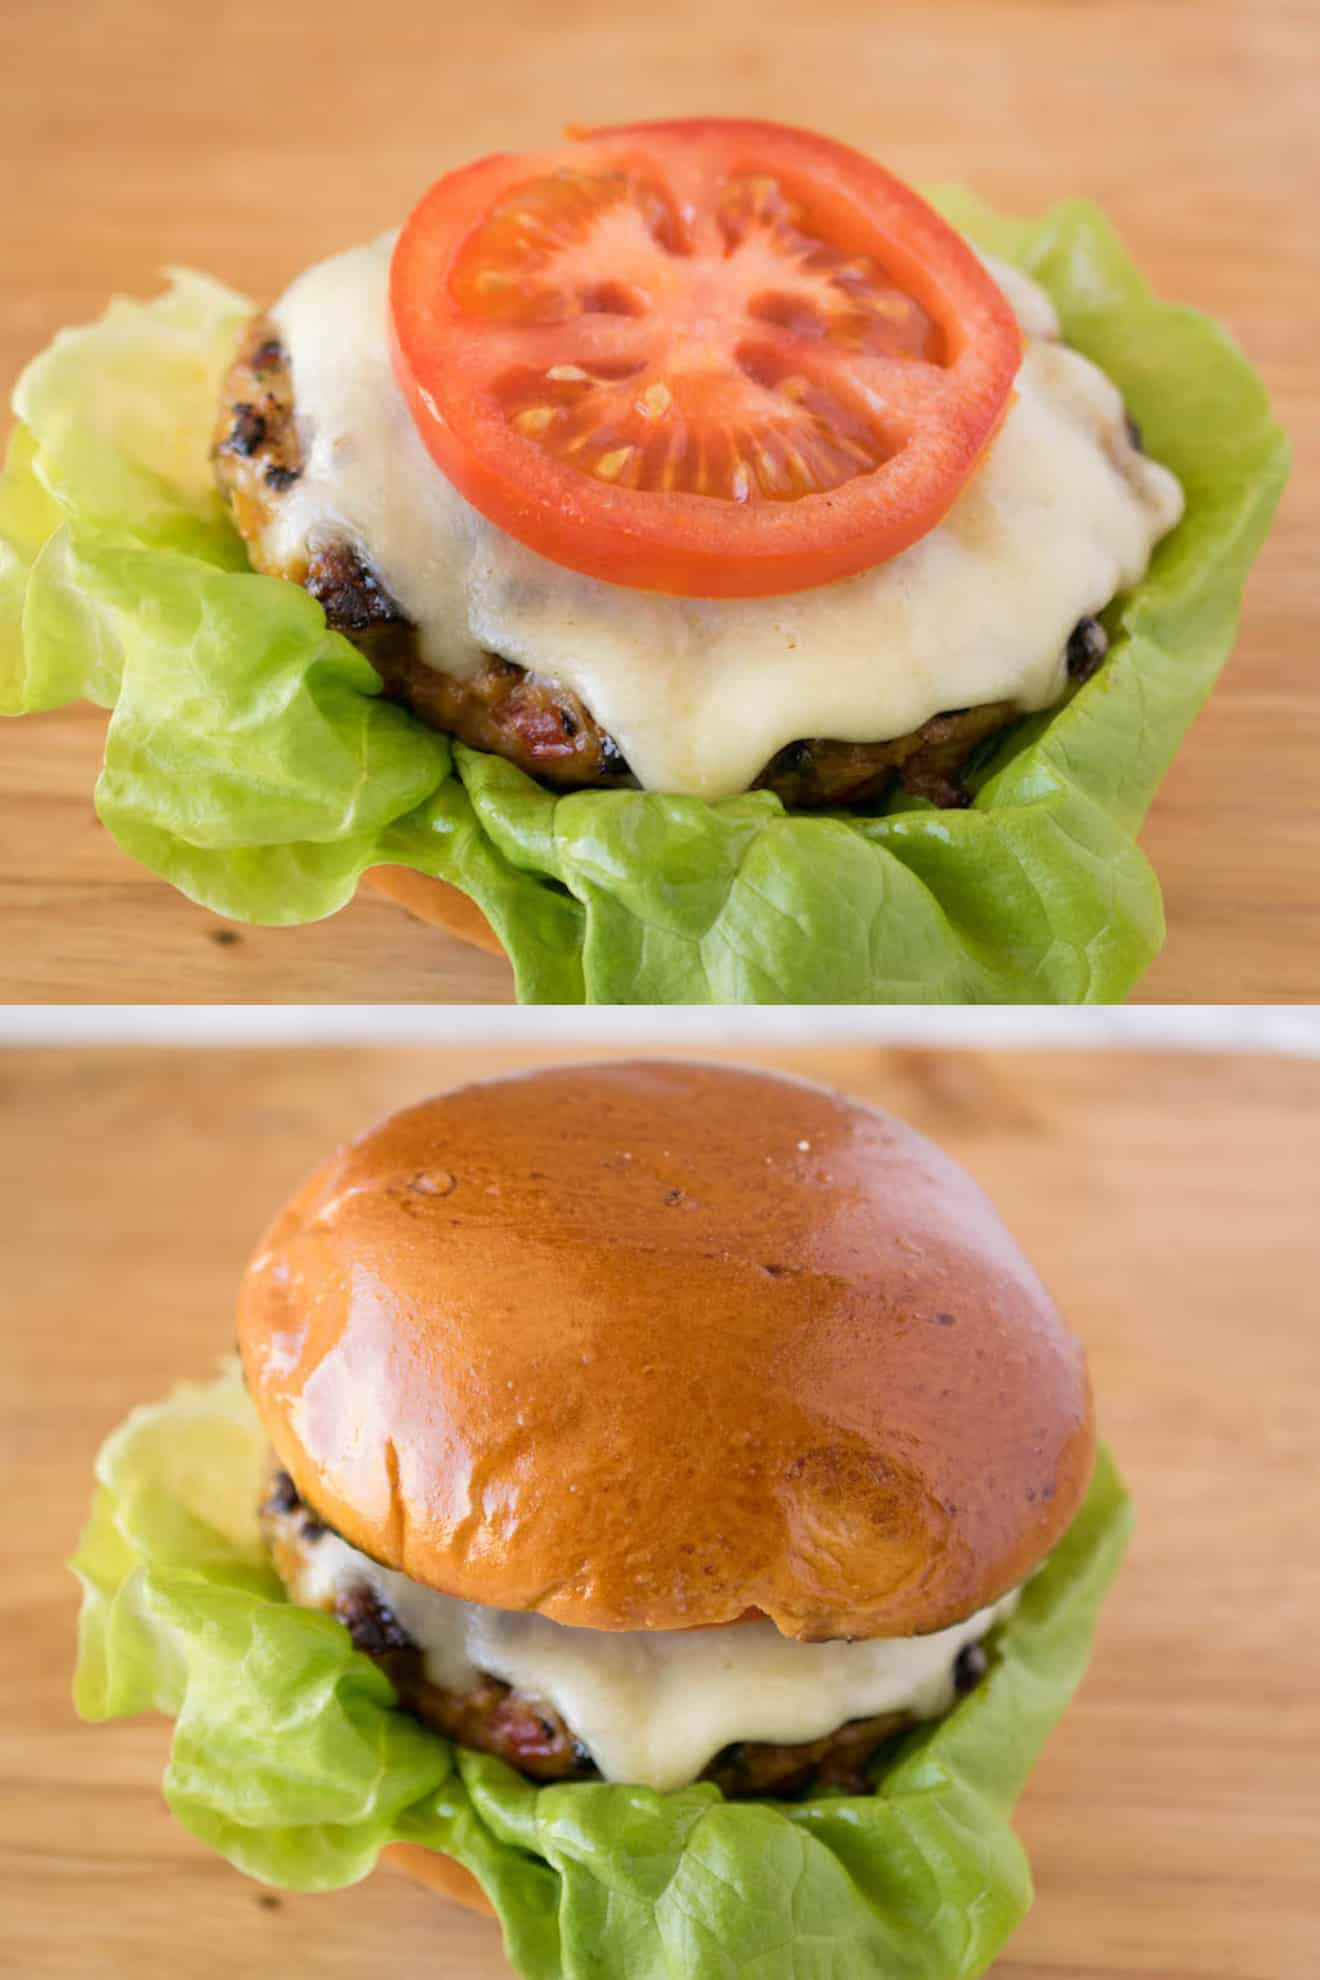 Tomato topped cheeseburger and a complete burger in a bun